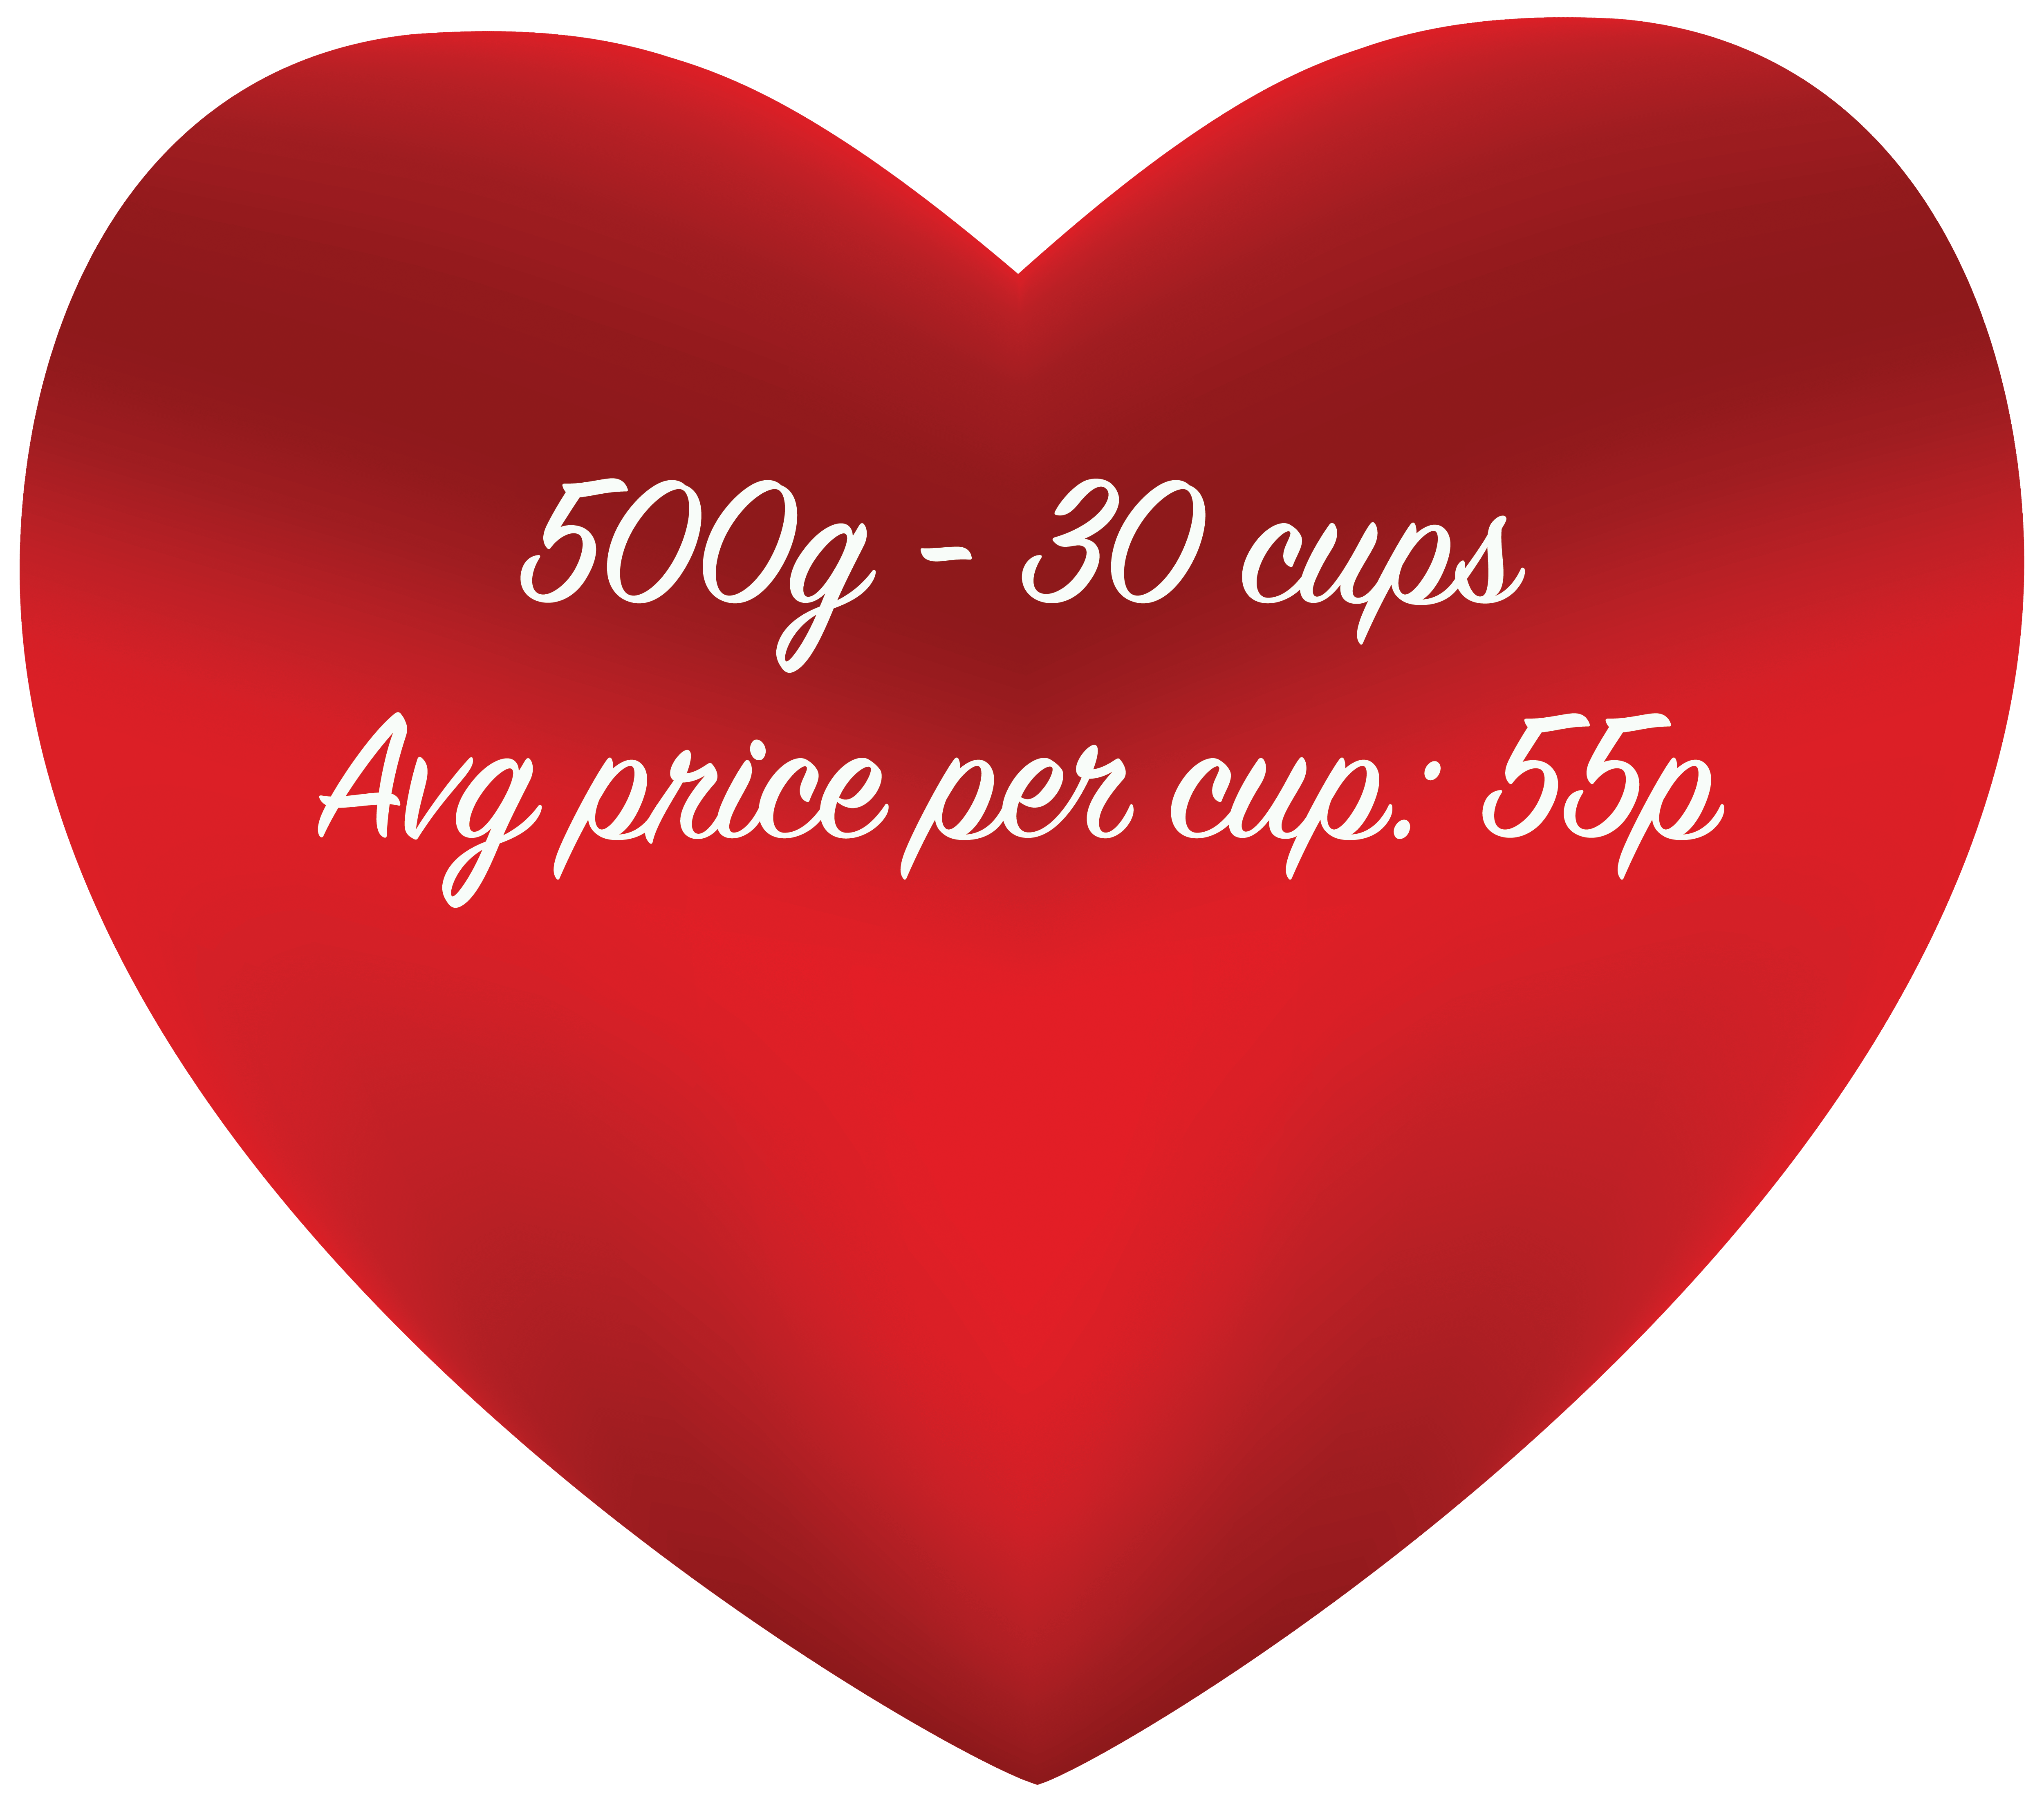 heart-30-cups